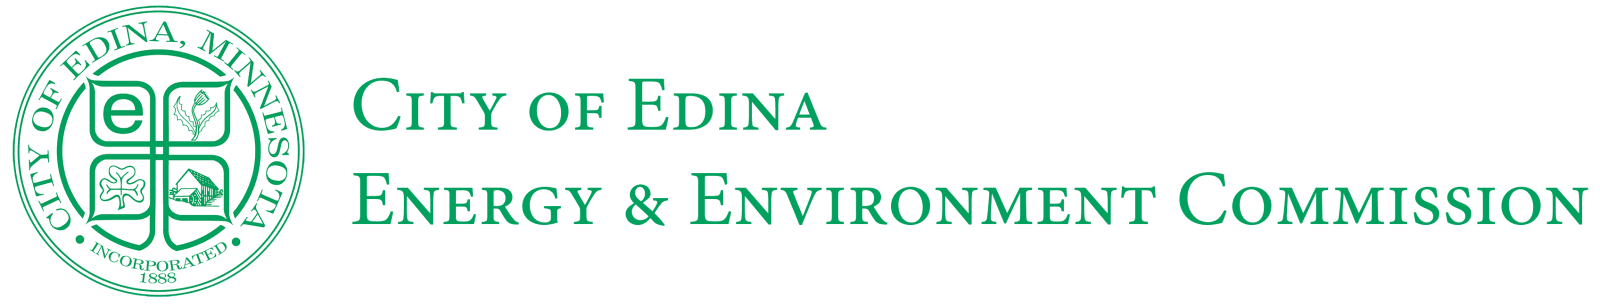 Energy & Environment Commission